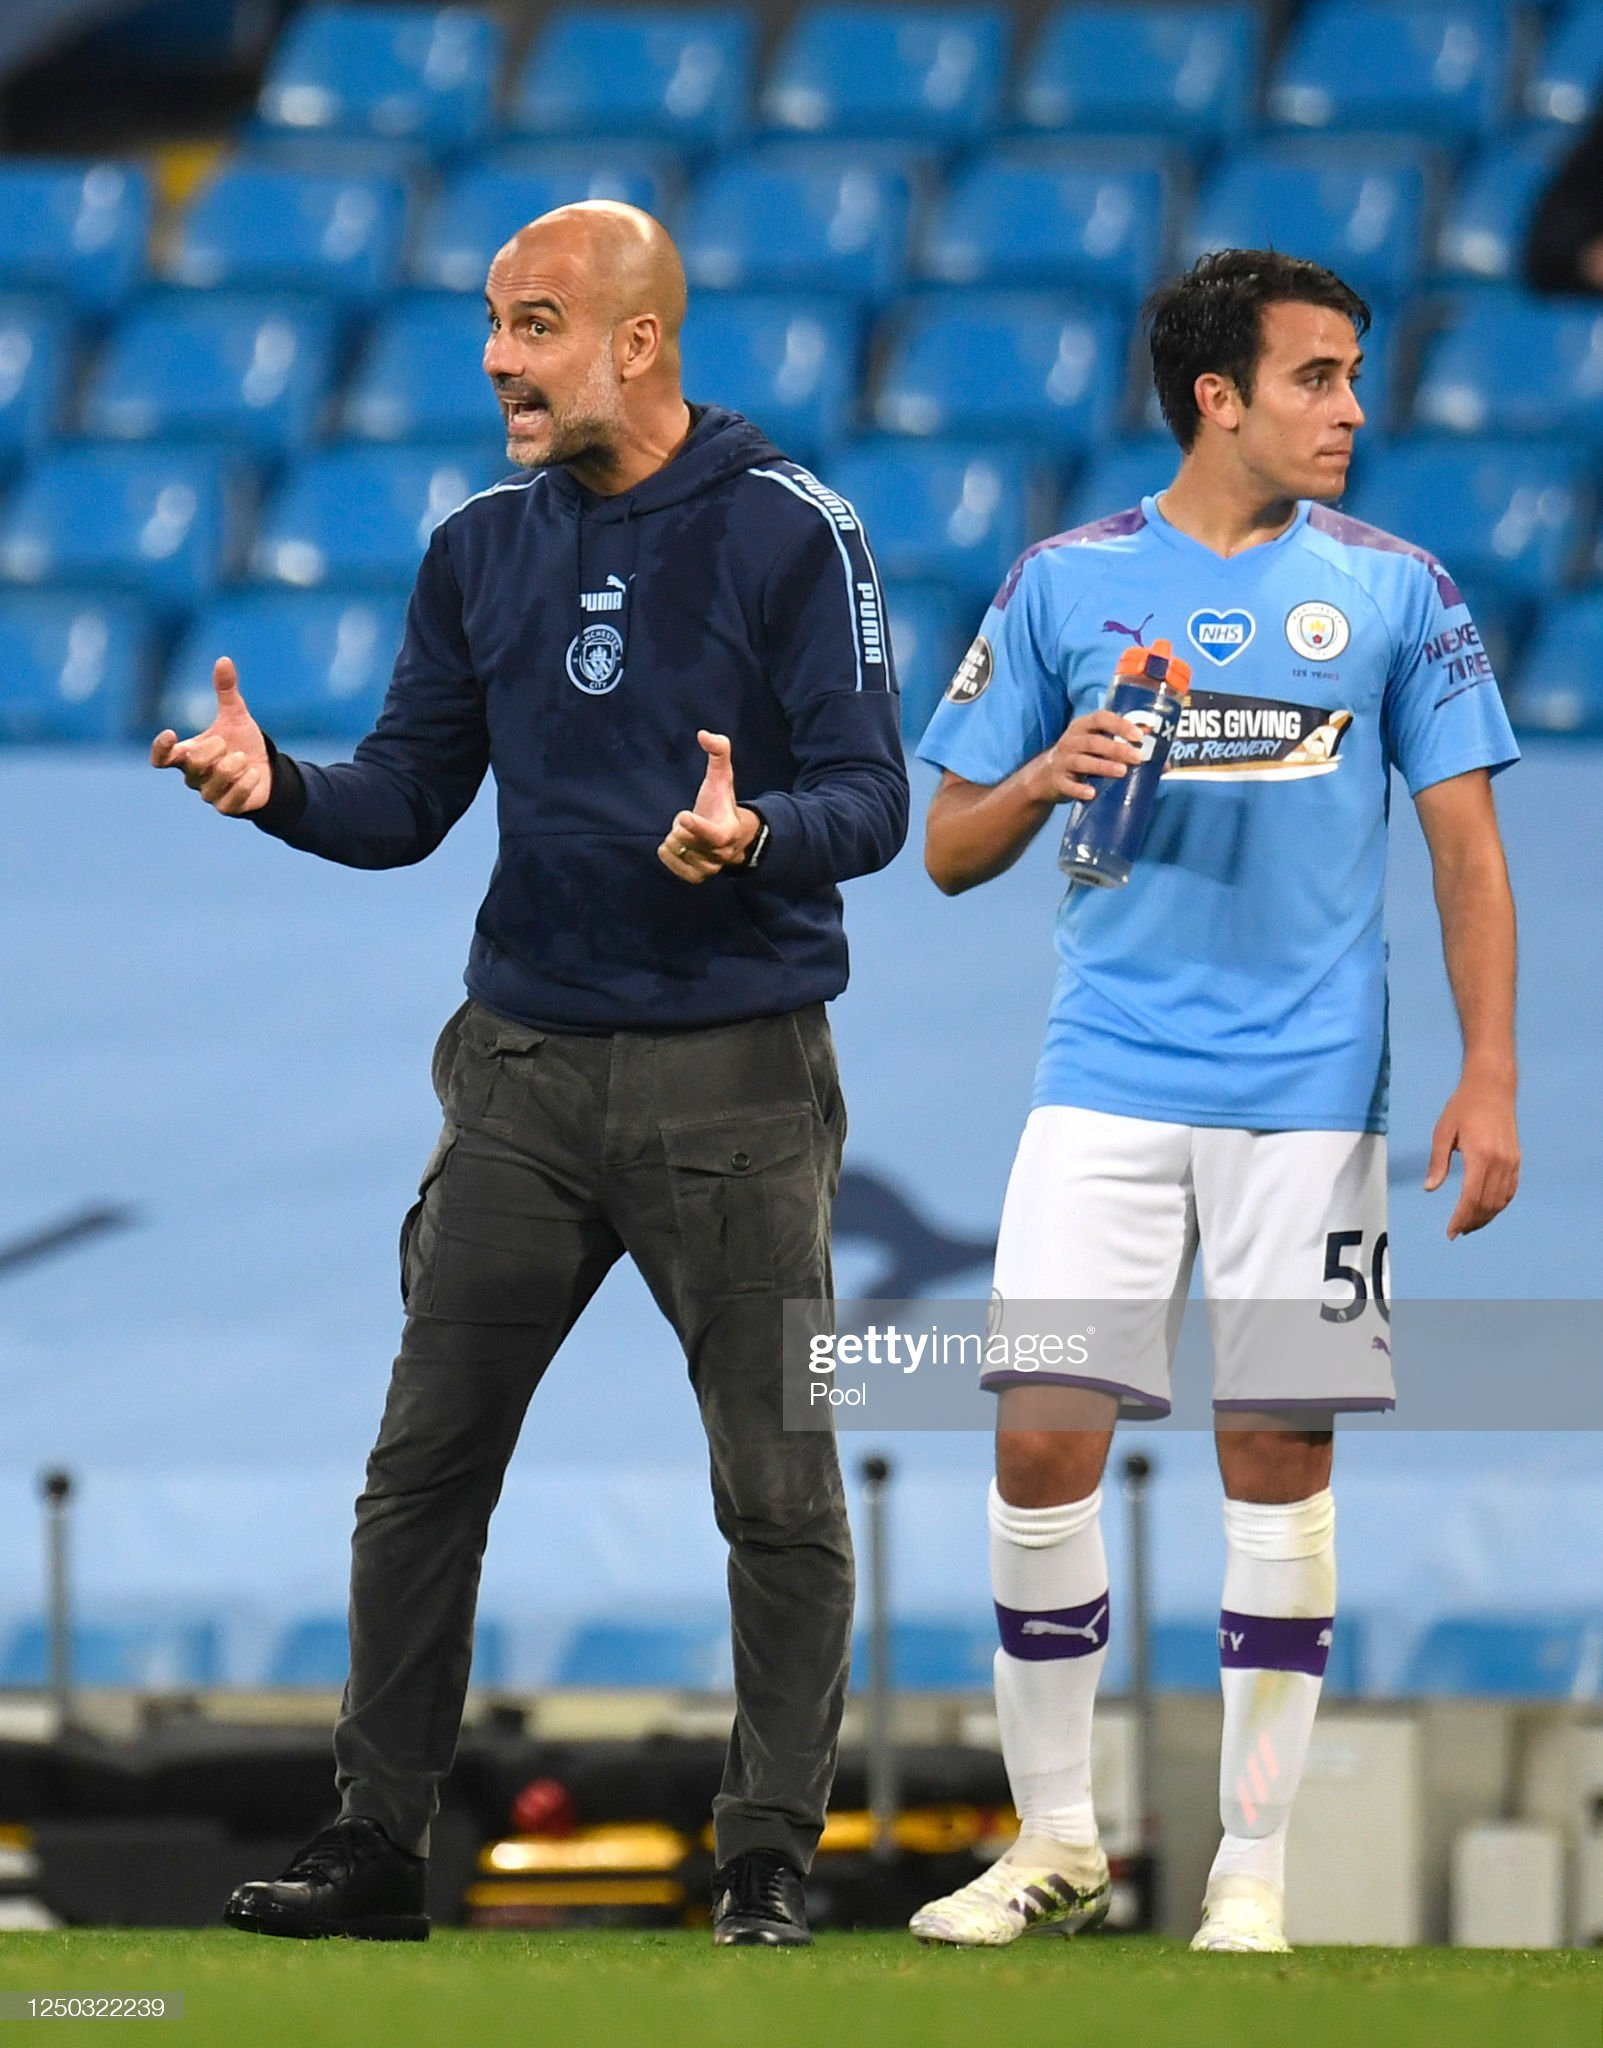 ¿Cuánto mide Eric Garcia? - Altura real: 1,79 - Real height Pep-guardiola-manager-of-manchester-city-reacts-as-eric-garcia-of-picture-id1250322239?s=2048x2048